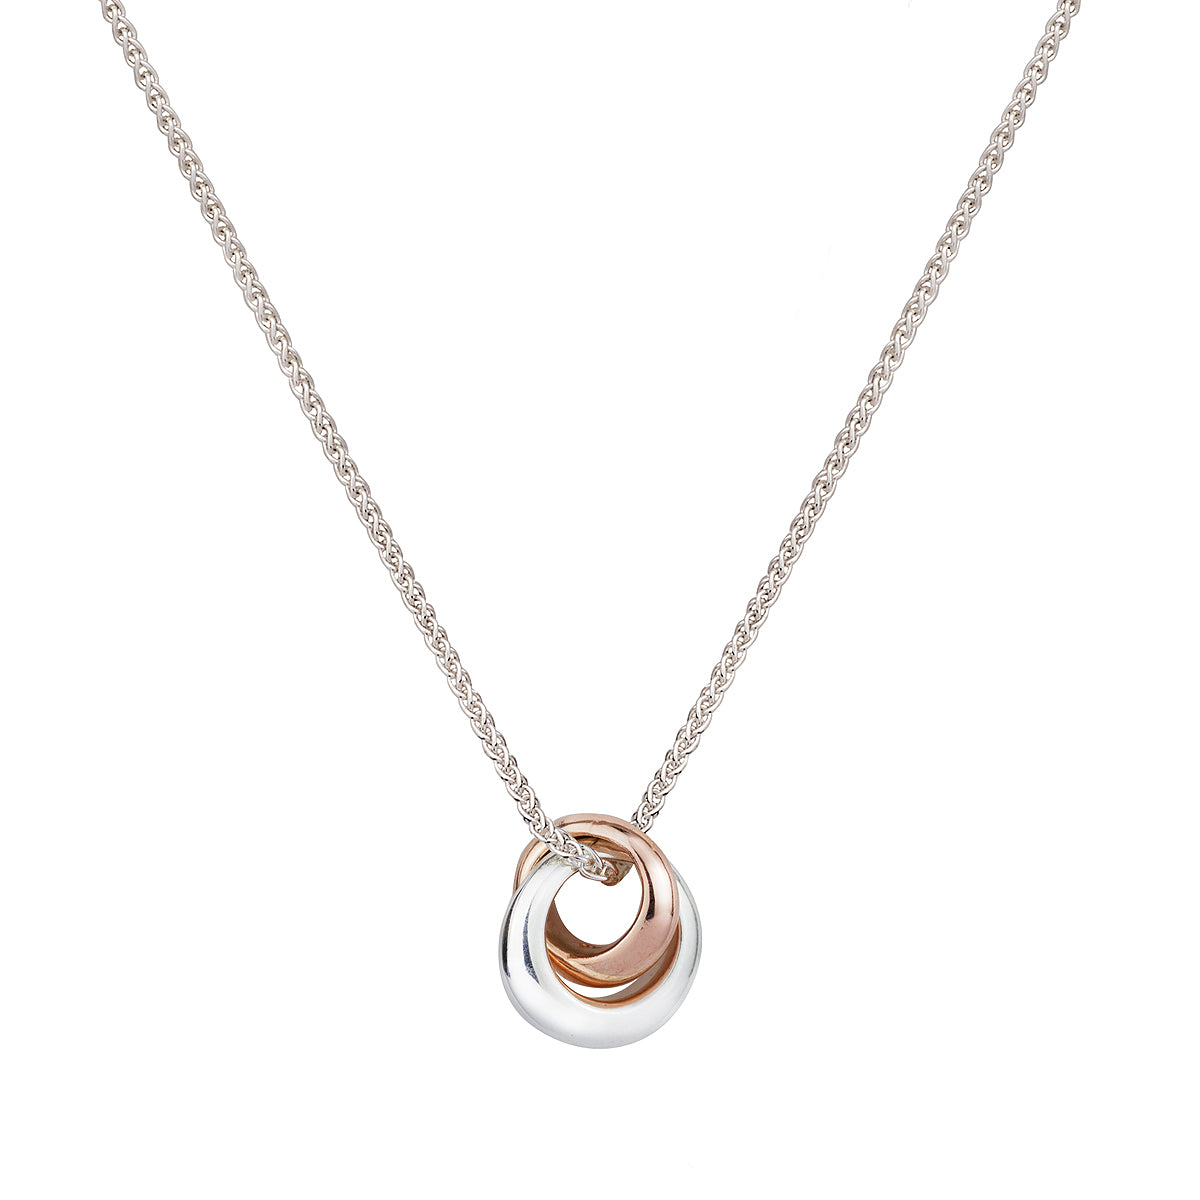 Silver and rose gold Eclipse Loops Circles Russian Style Necklace Scarlett Jewellery